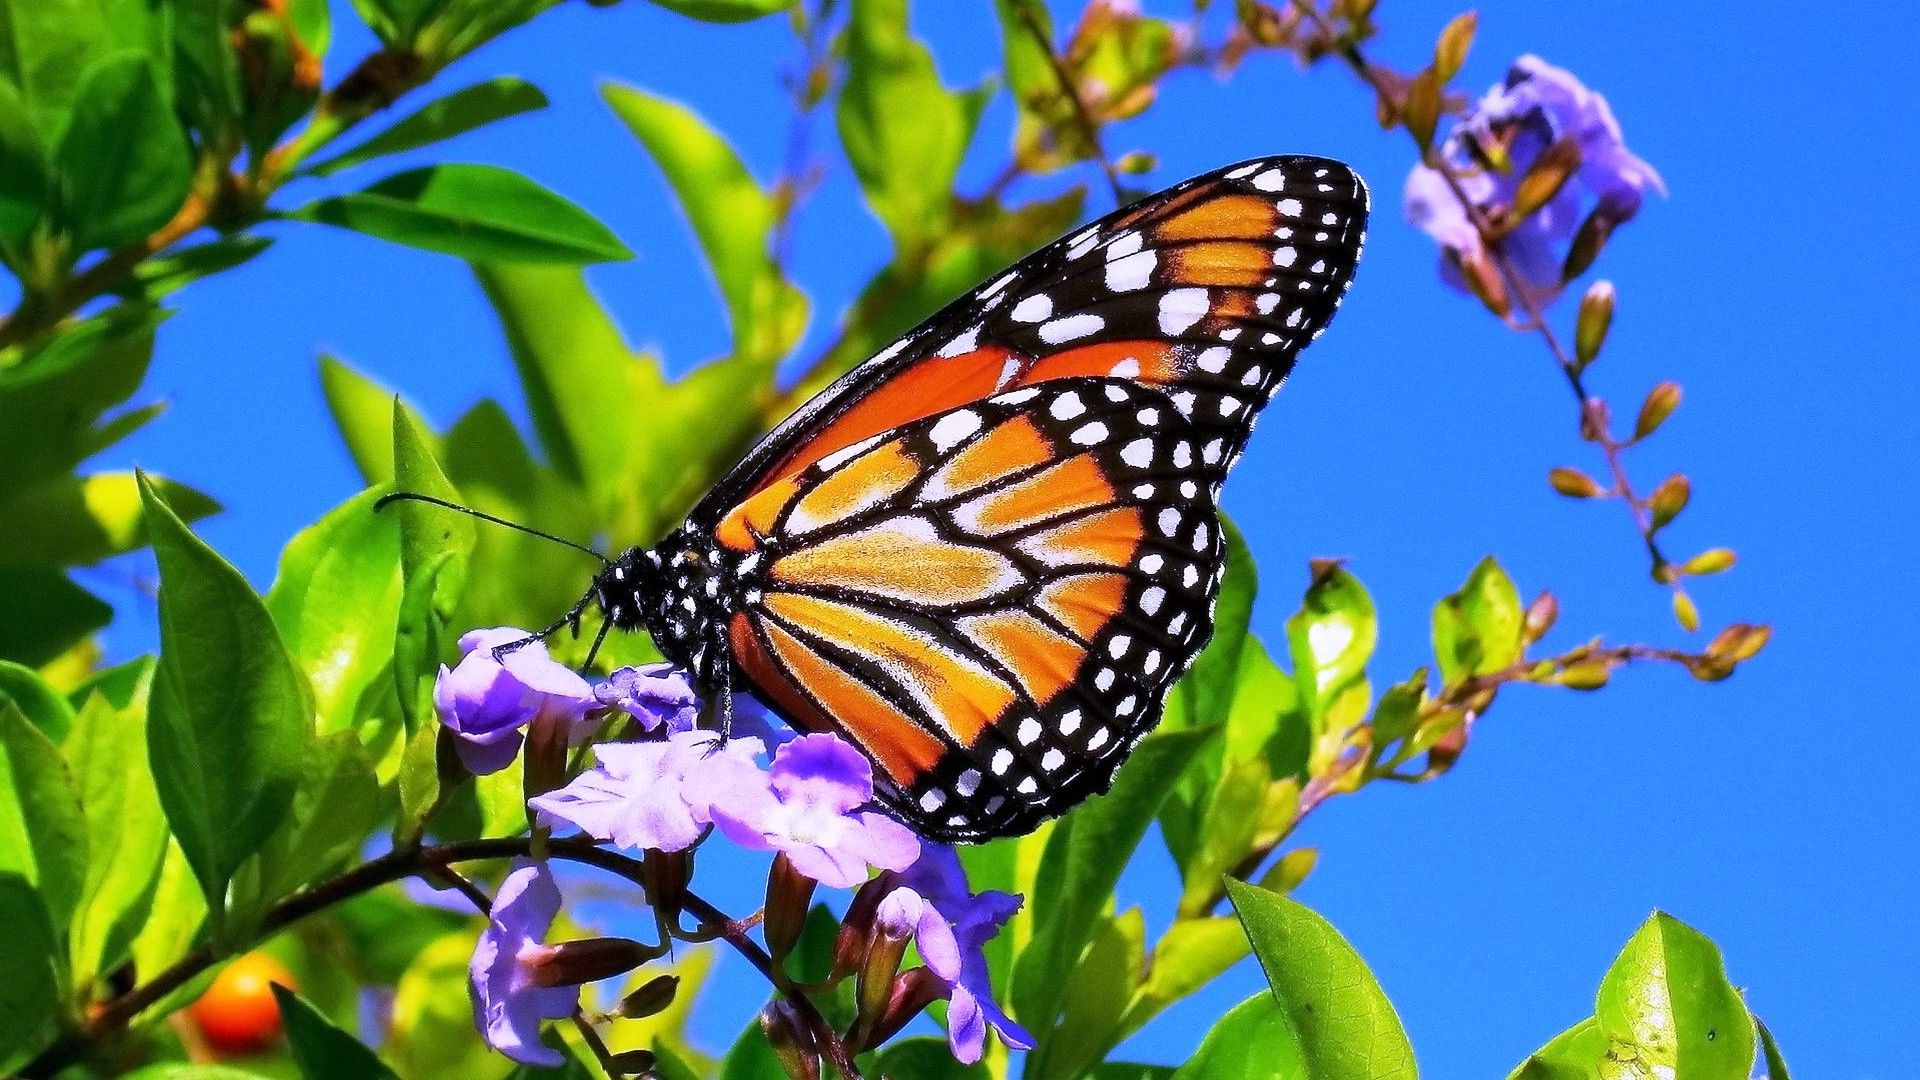 Flowers and Butterflies Spring Wallpapers - HD Wallpapers Pop clip freeuse download